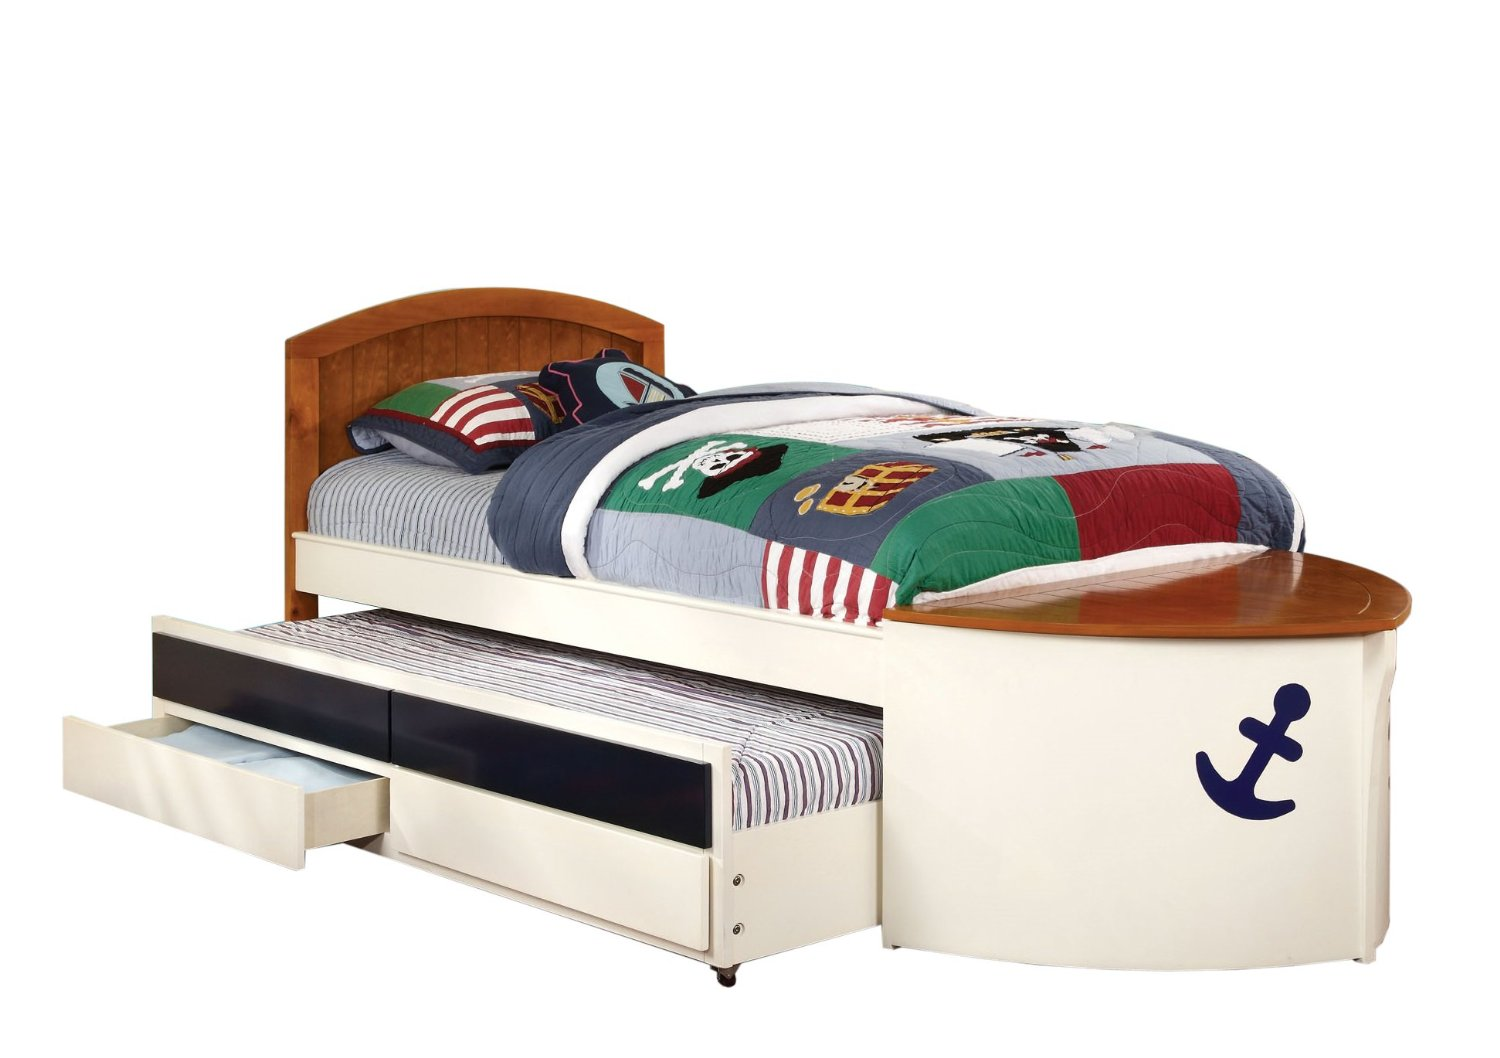 Pottery Barn Kids Speedboat Ii Bed And Trundle Decor